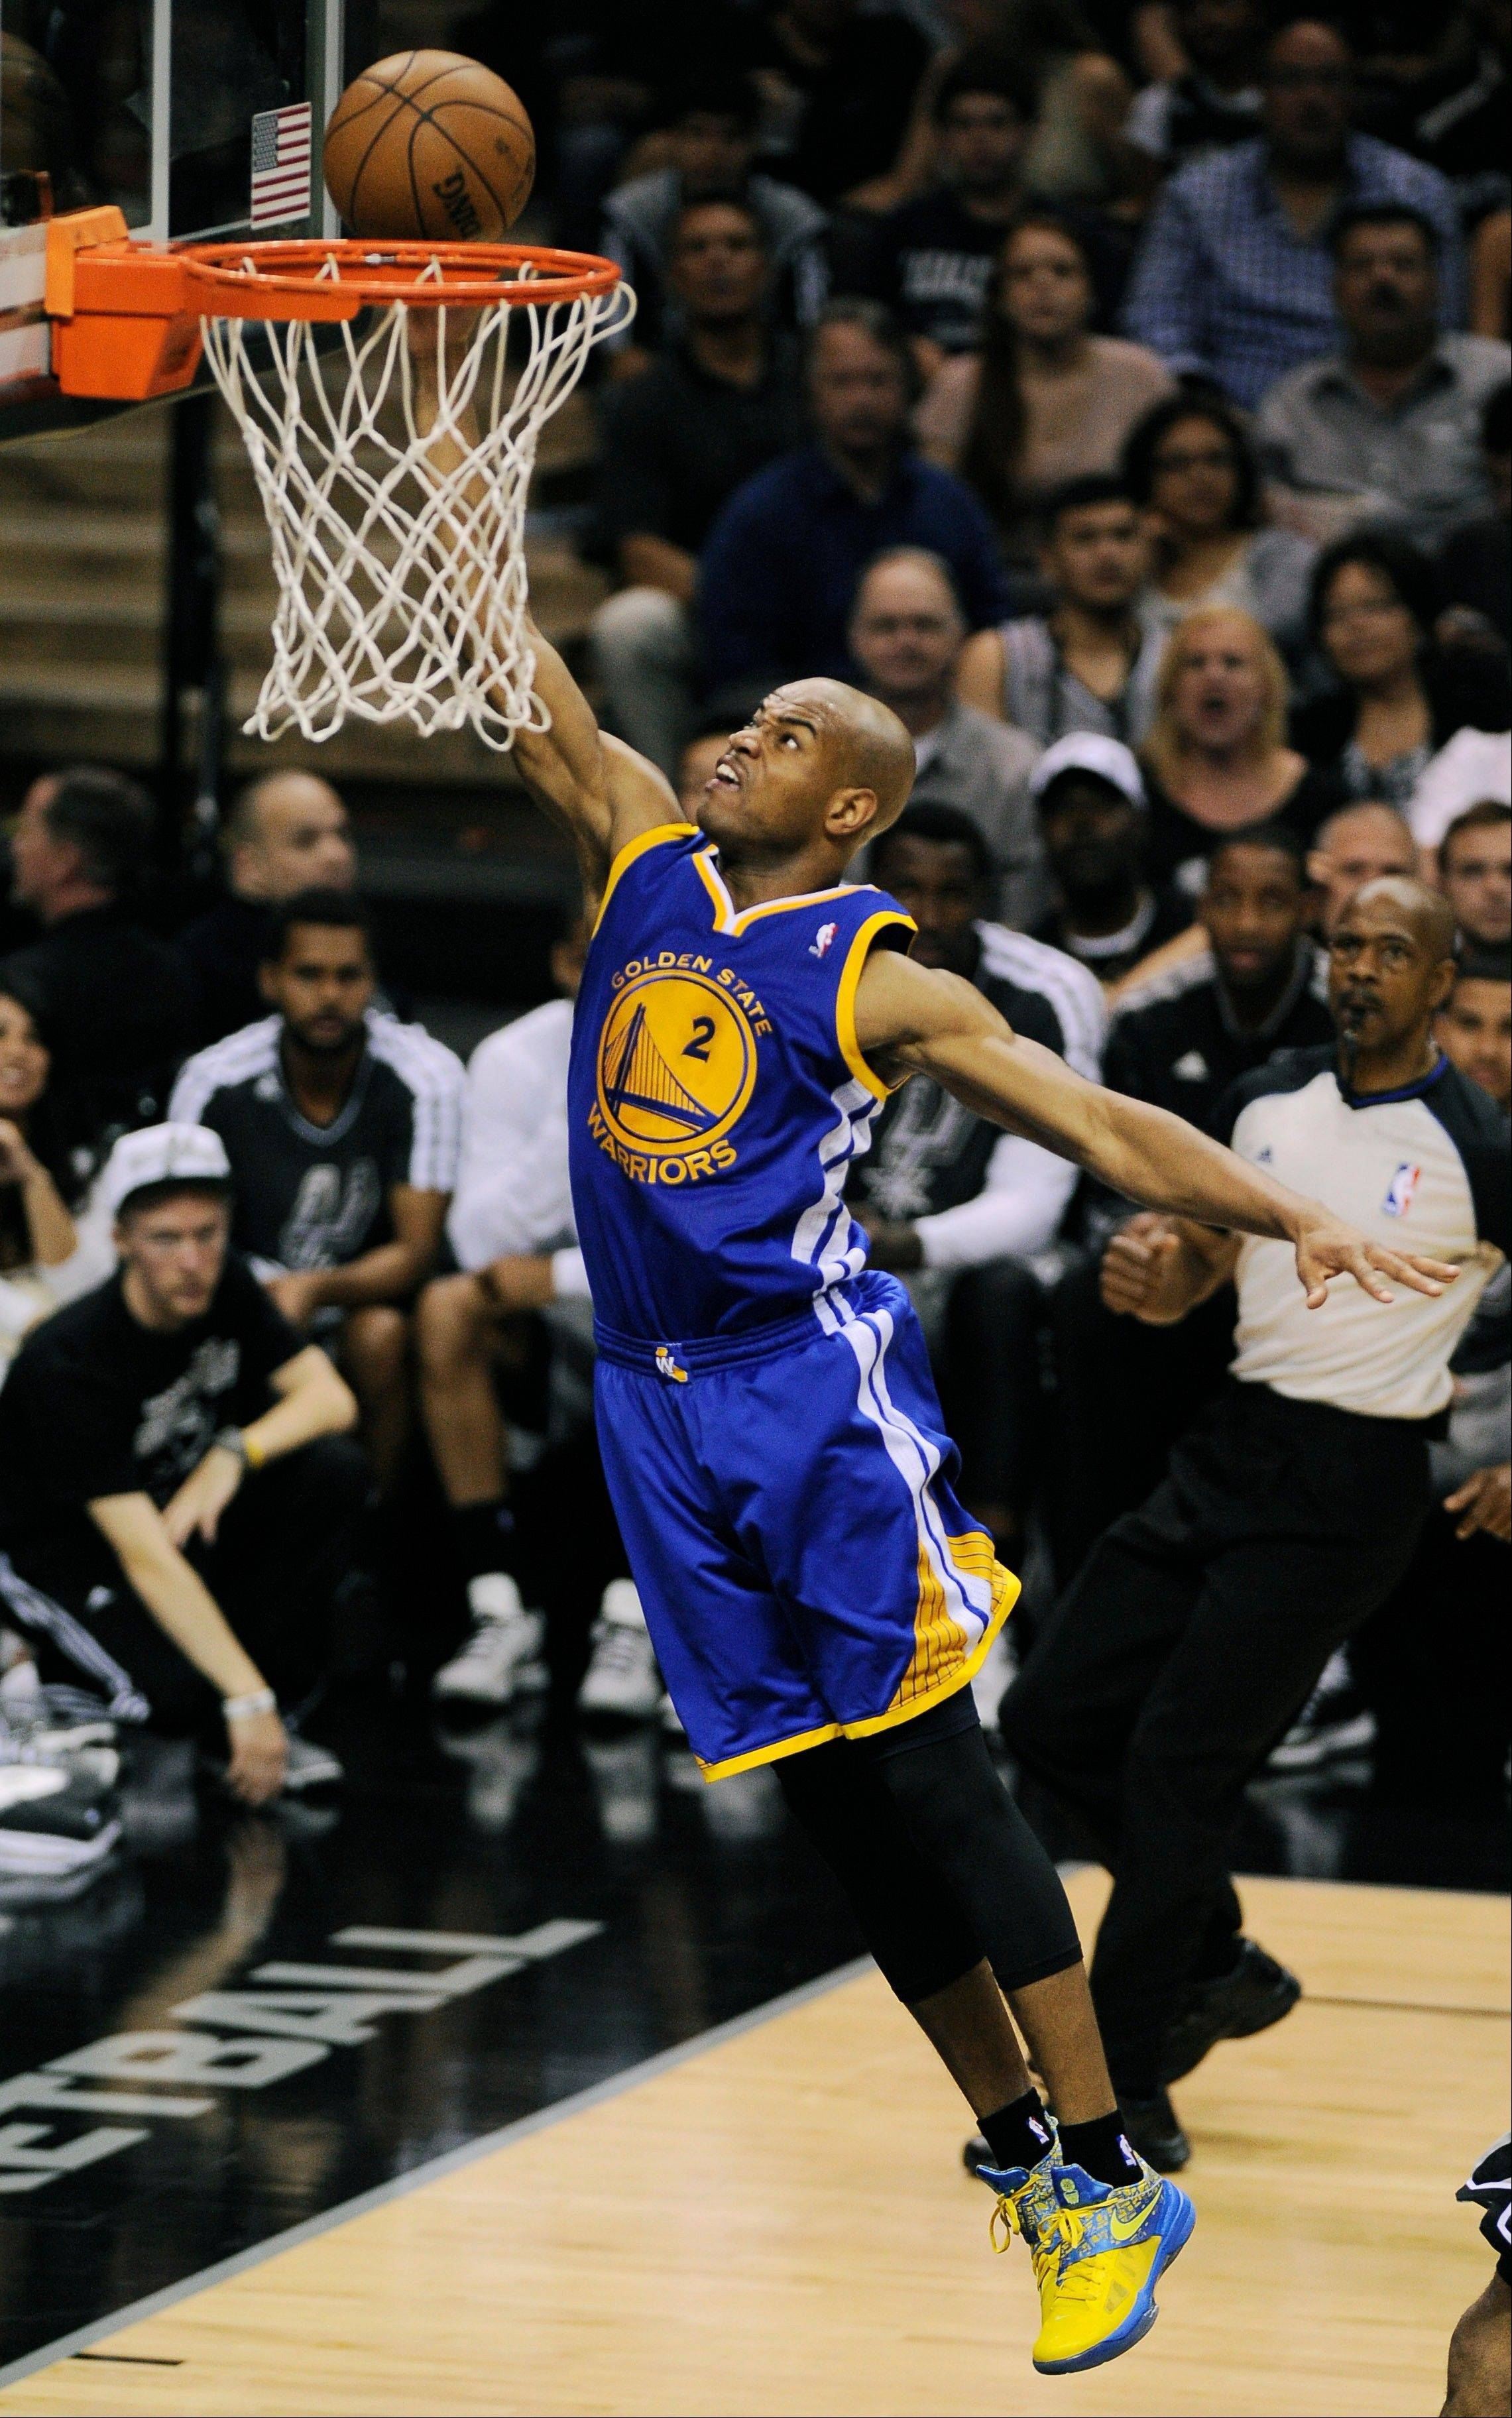 Golden State Warriors' Jarrett Jack shoots against the San Antonio Spurs during the second half of Game 5 of the Western Conference semifinal NBA basketball playoff series, Tuesday, May 14, 2013, in San Antonio.